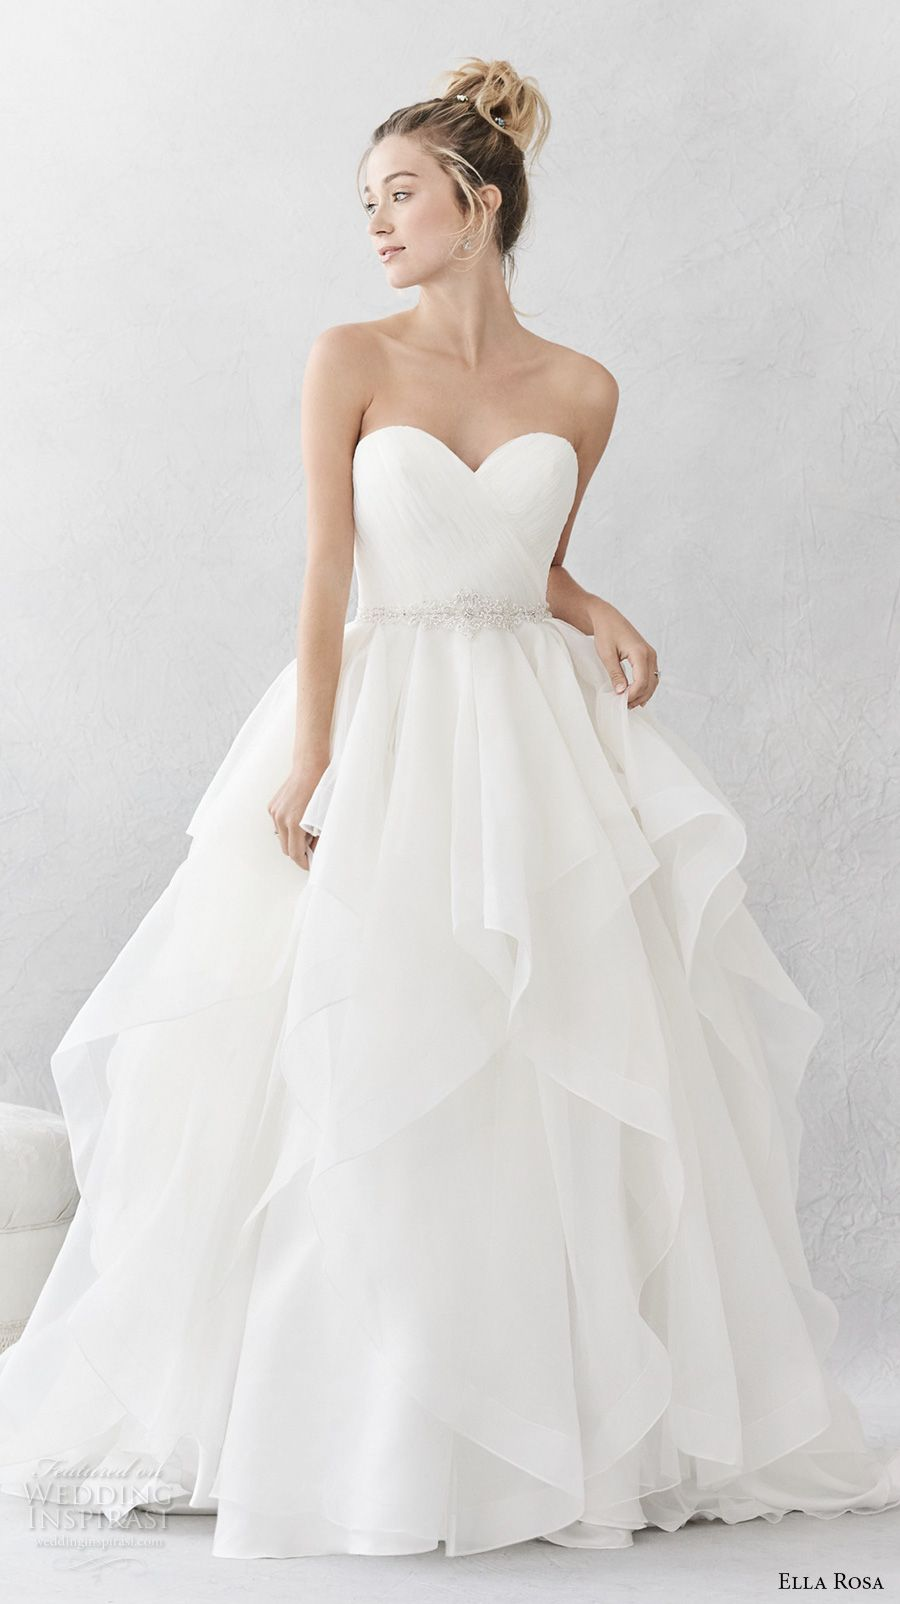 Ella Rosa Spring 2017 Bridal Strapless Sweetheart Neckline Wrap Over Bodice Simple Layer Skirt Ball Gown A Line Wedding Dress Open Back Chapel Train 376